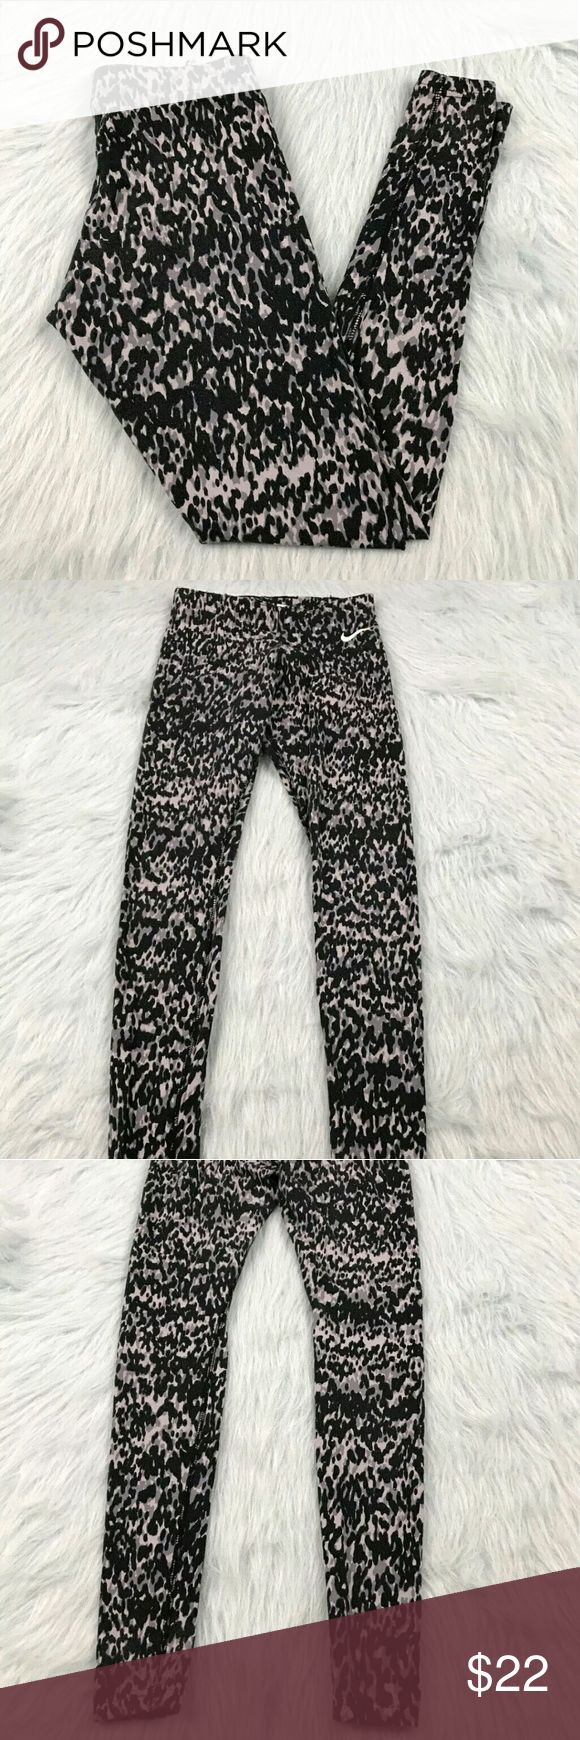 "Nike Leopard Print Leggings Nike black gray leopard print leggings. Womens size XS. Gently used, without flaws. See pictures for details.  Waist laying flat - 12"" Rise - 9"" Inseam - 27""   Inventory 04292017 Nike Pants Leggings"